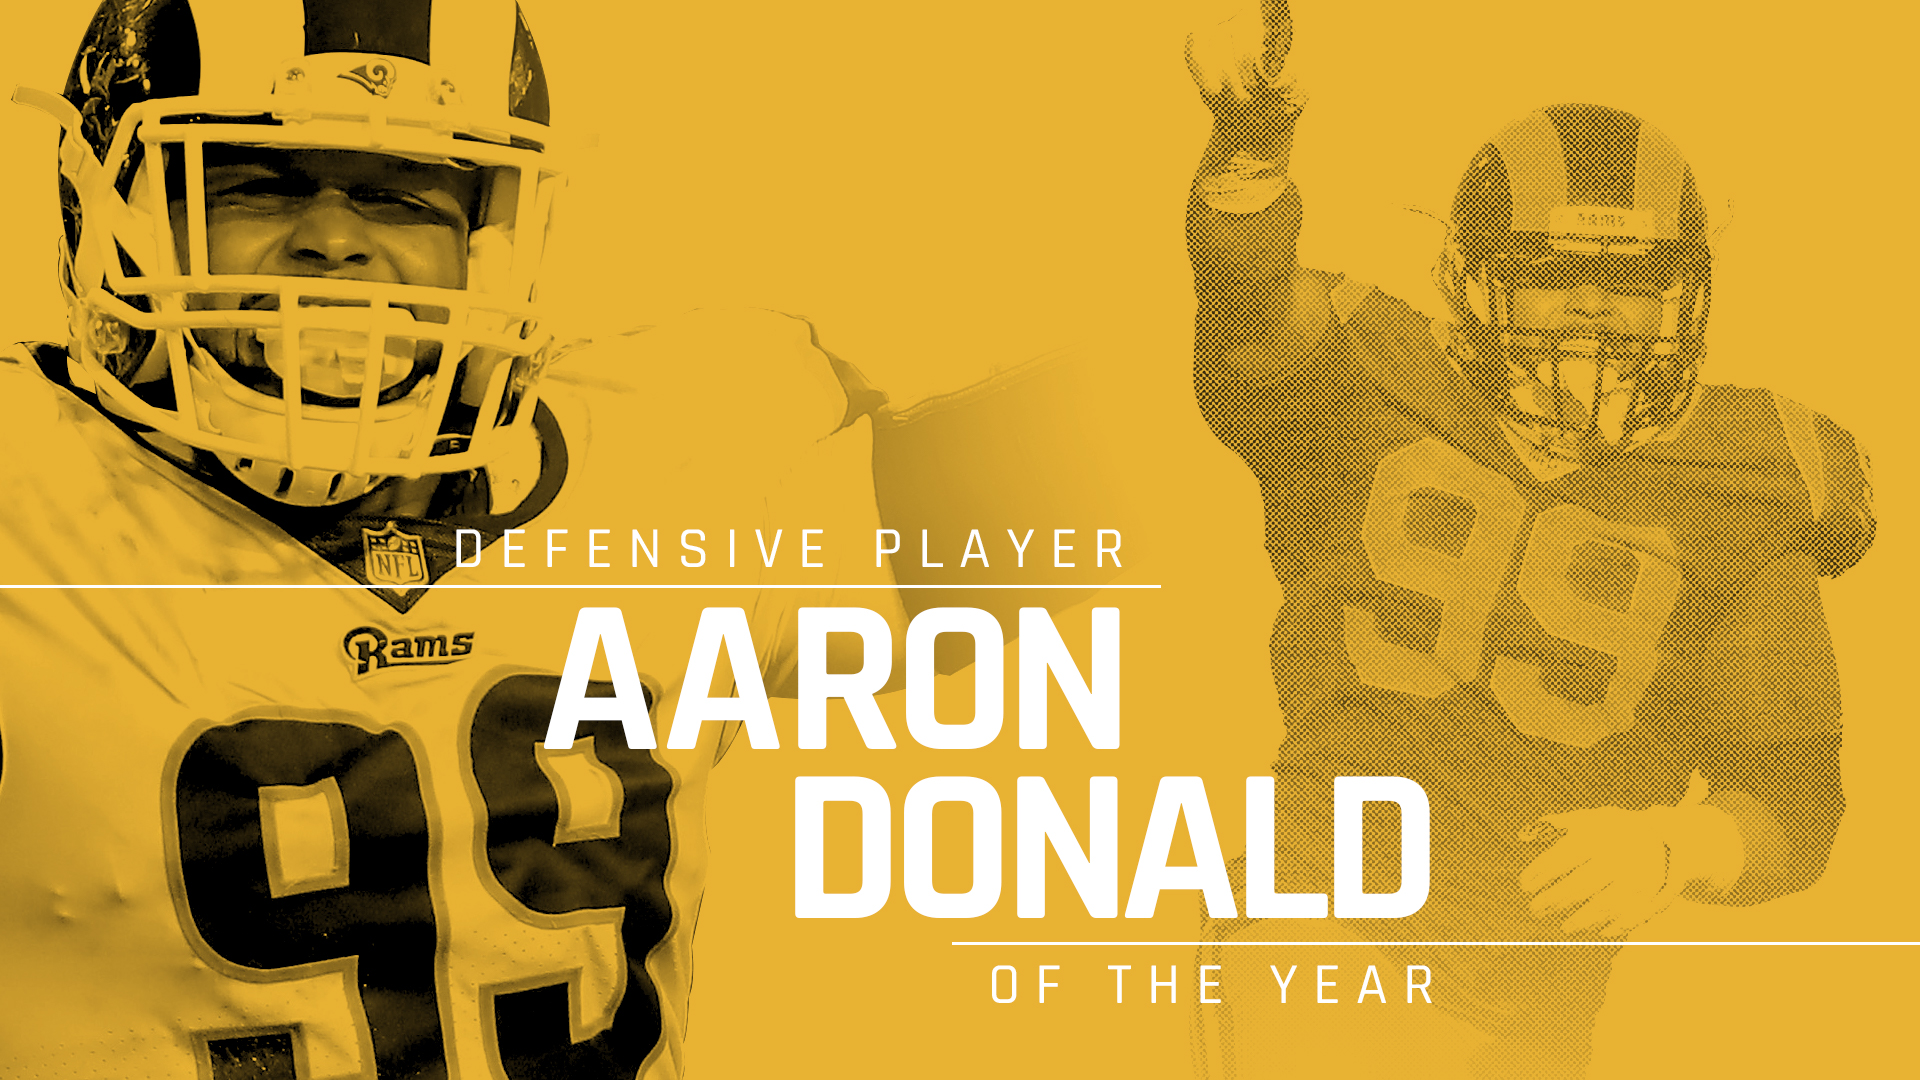 95cbee050 NFL players vote Aaron Donald Sporting News Defensive Player of the Year  for 2018 | Sporting News